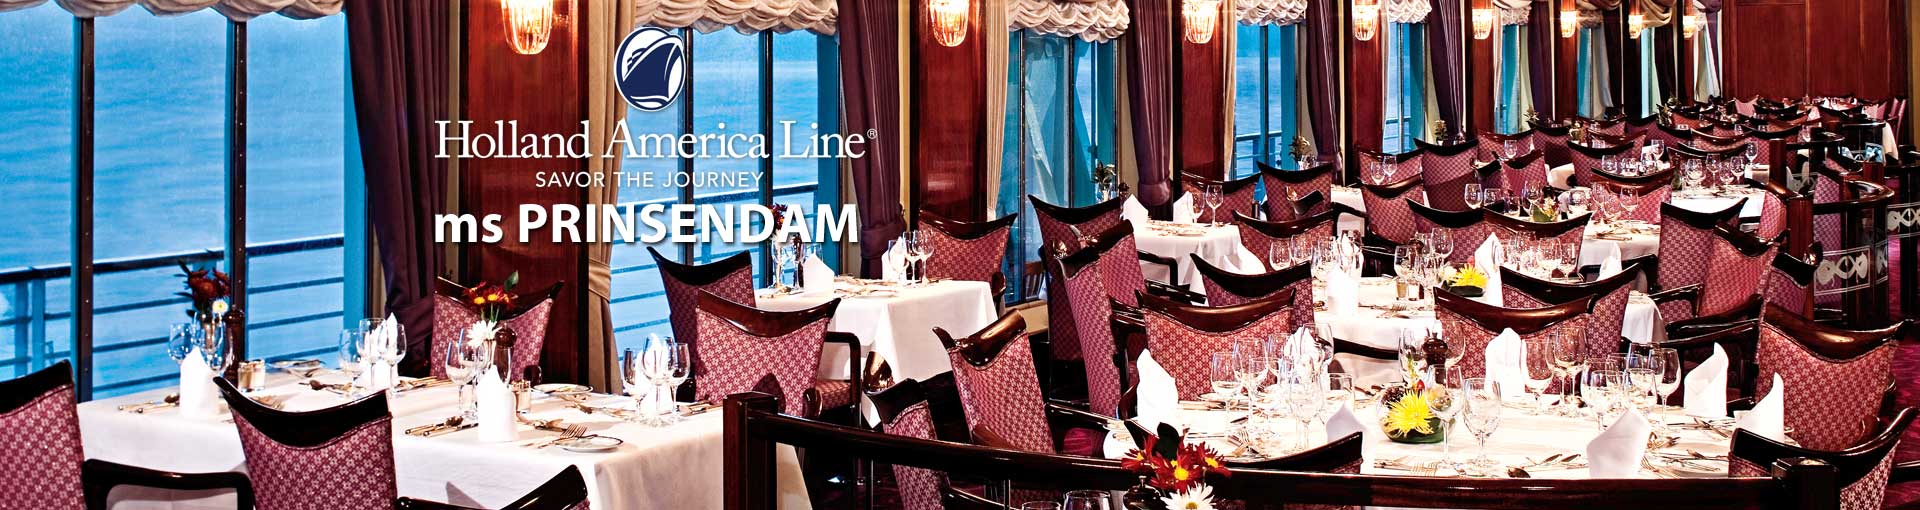 Holland America ms Prinsendam cruise ship